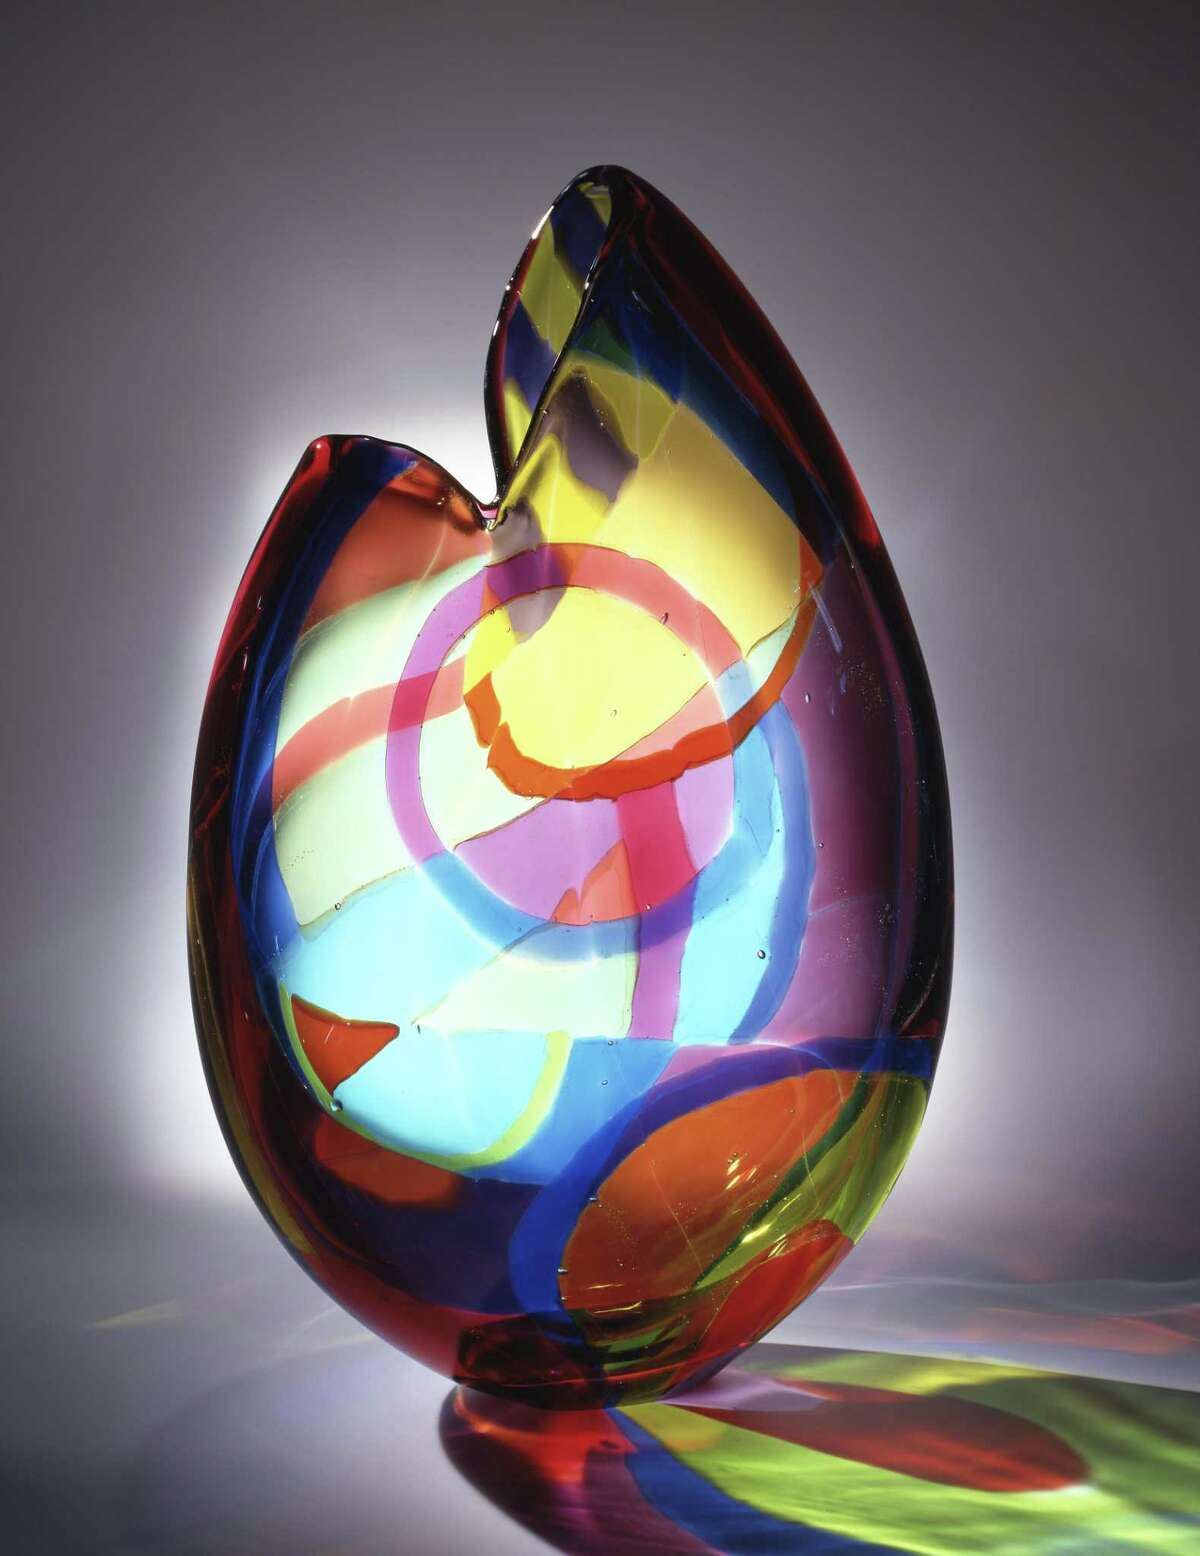 A glass vessel made by Norwalk artist Dorothy Hafner, who began working with glass after being inspired by a trip to the Great Barrier Reef.